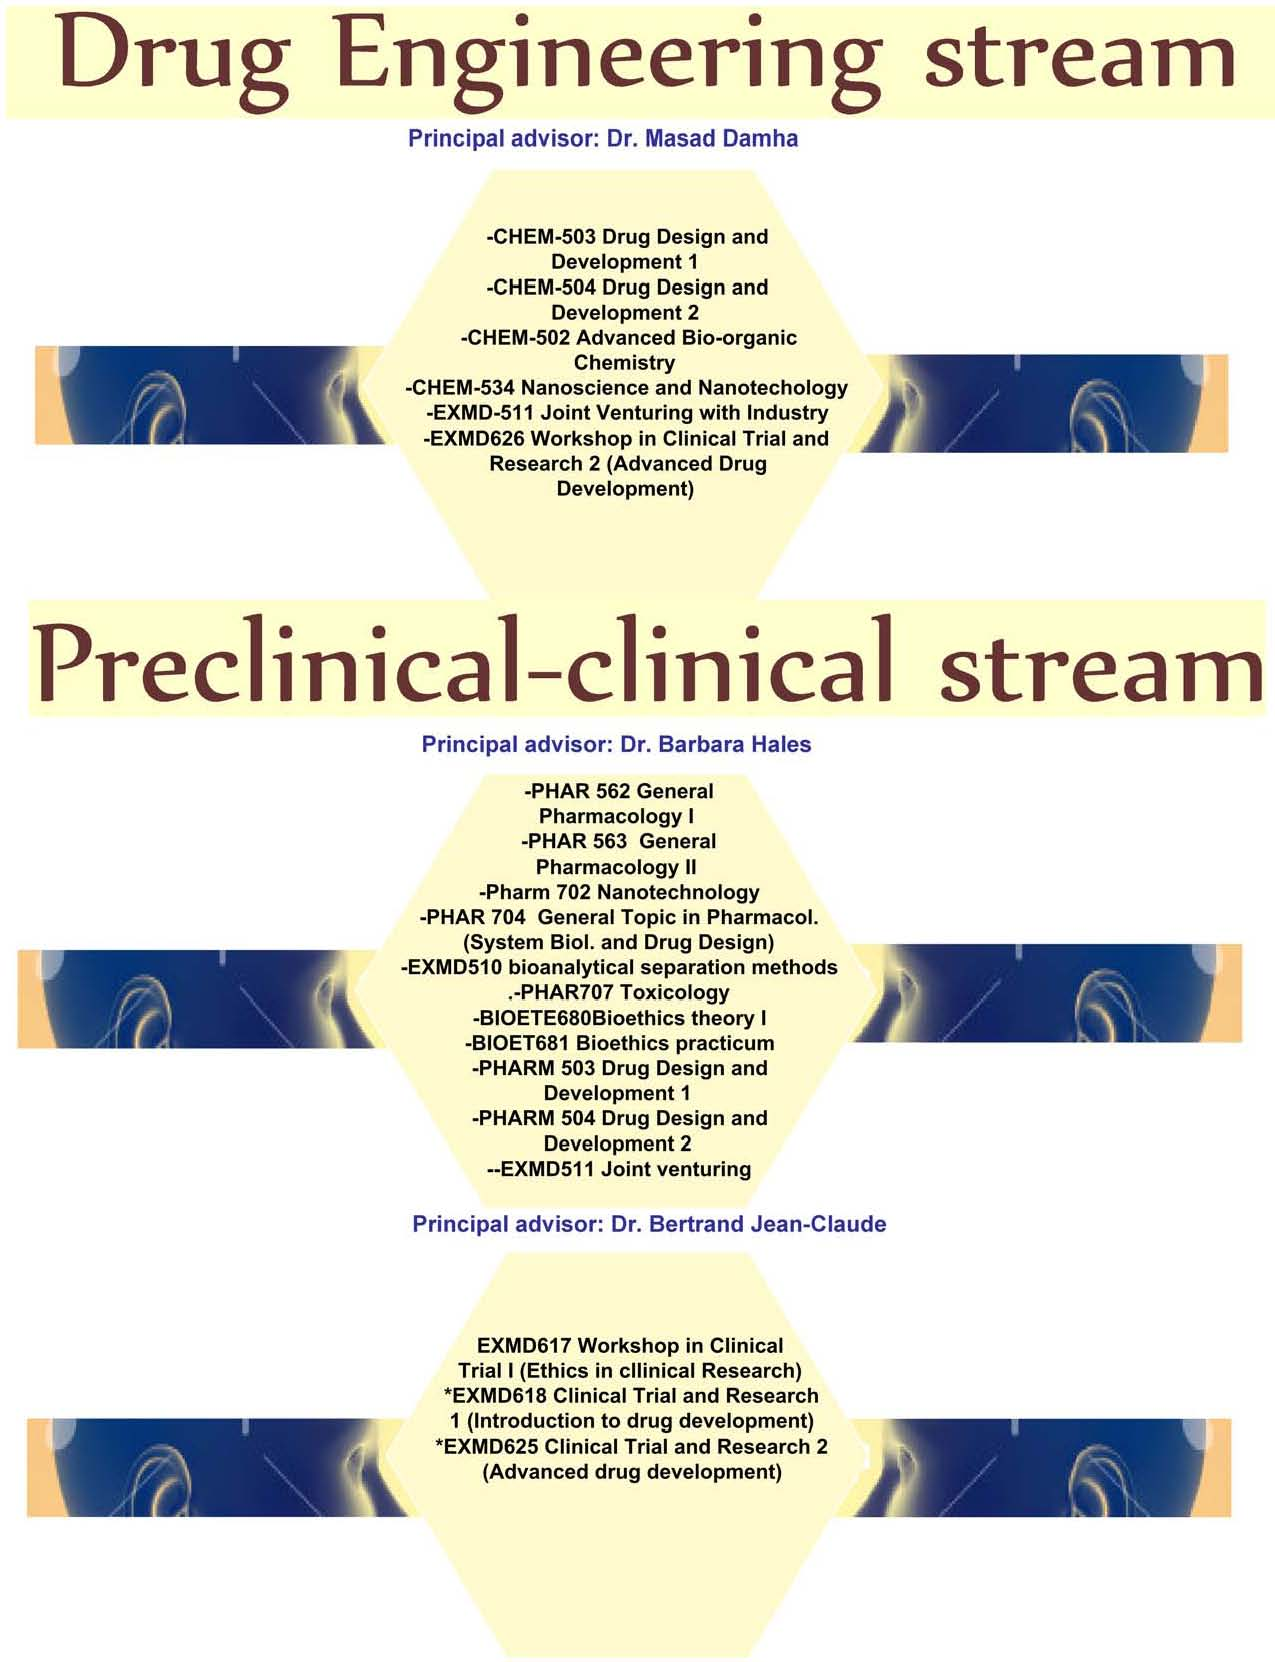 Drug Development Training Streams